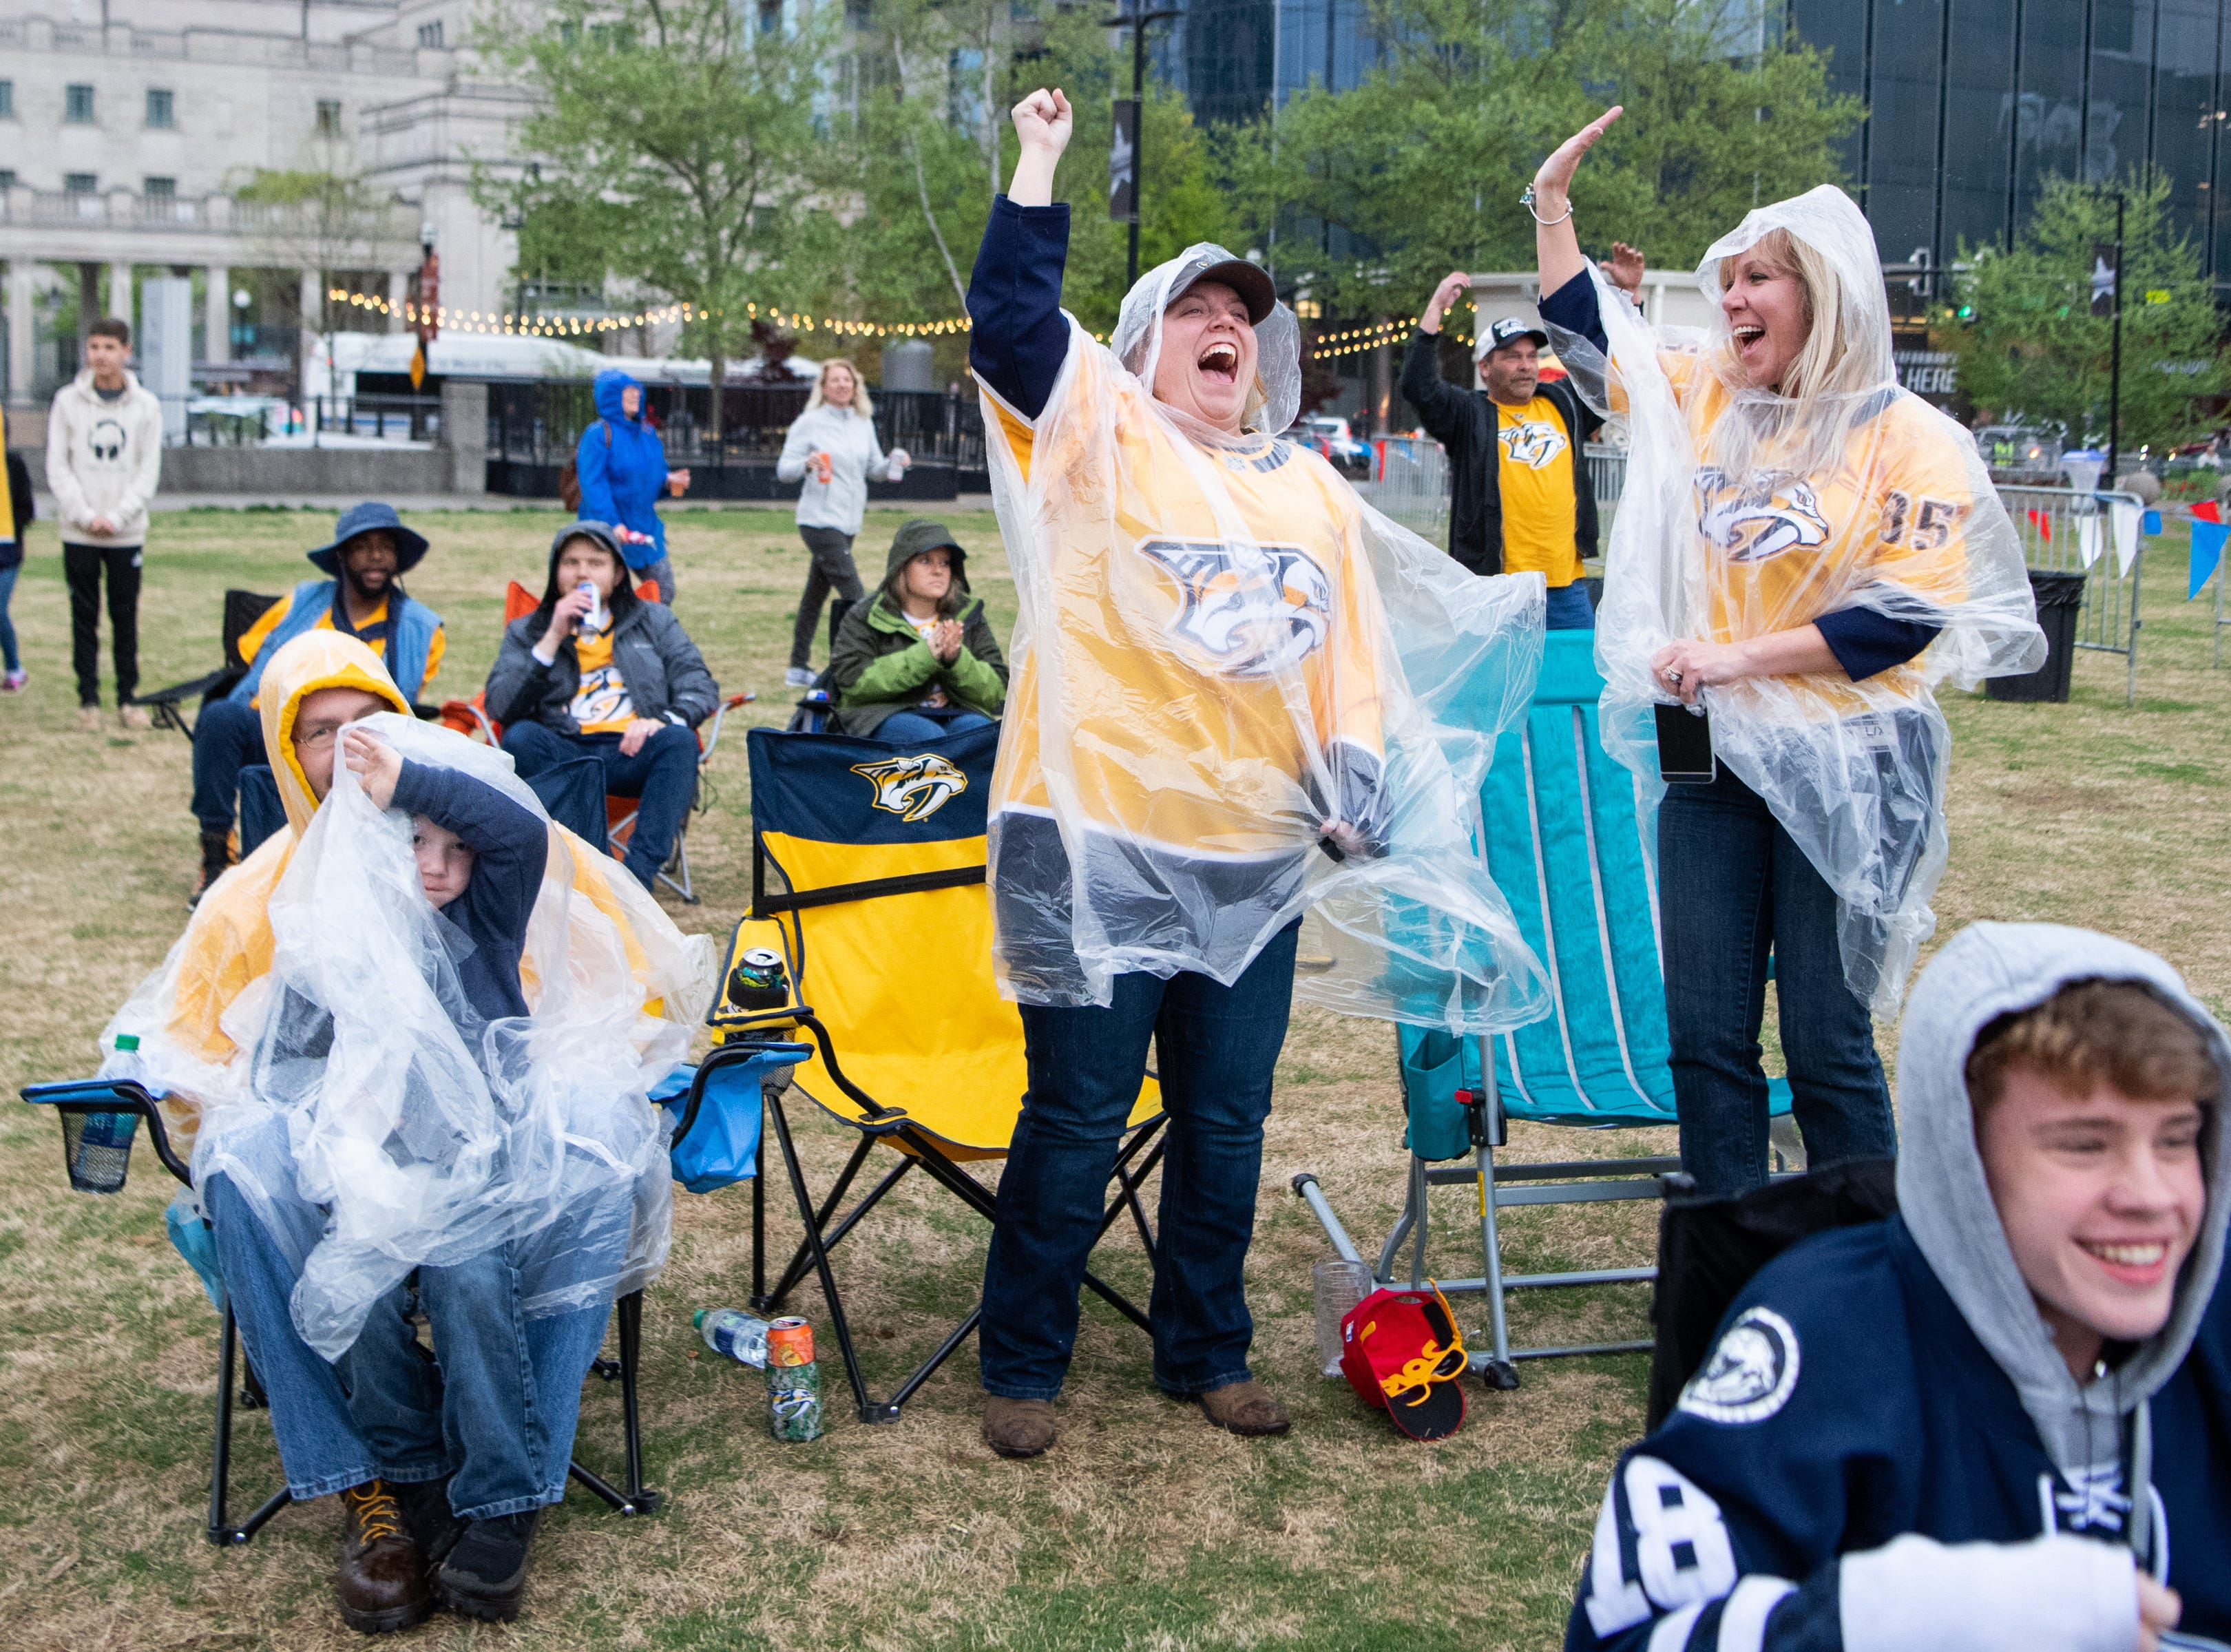 Pam Pegram and Becca, Jared, and JD Conrey (from right) celebrate the Nashville Predators' goal against the Dallas Stars during the second period at Preds Party in the Park at Walk of Fame Park Saturday, April 13, 2019, in Nashville, Tenn.